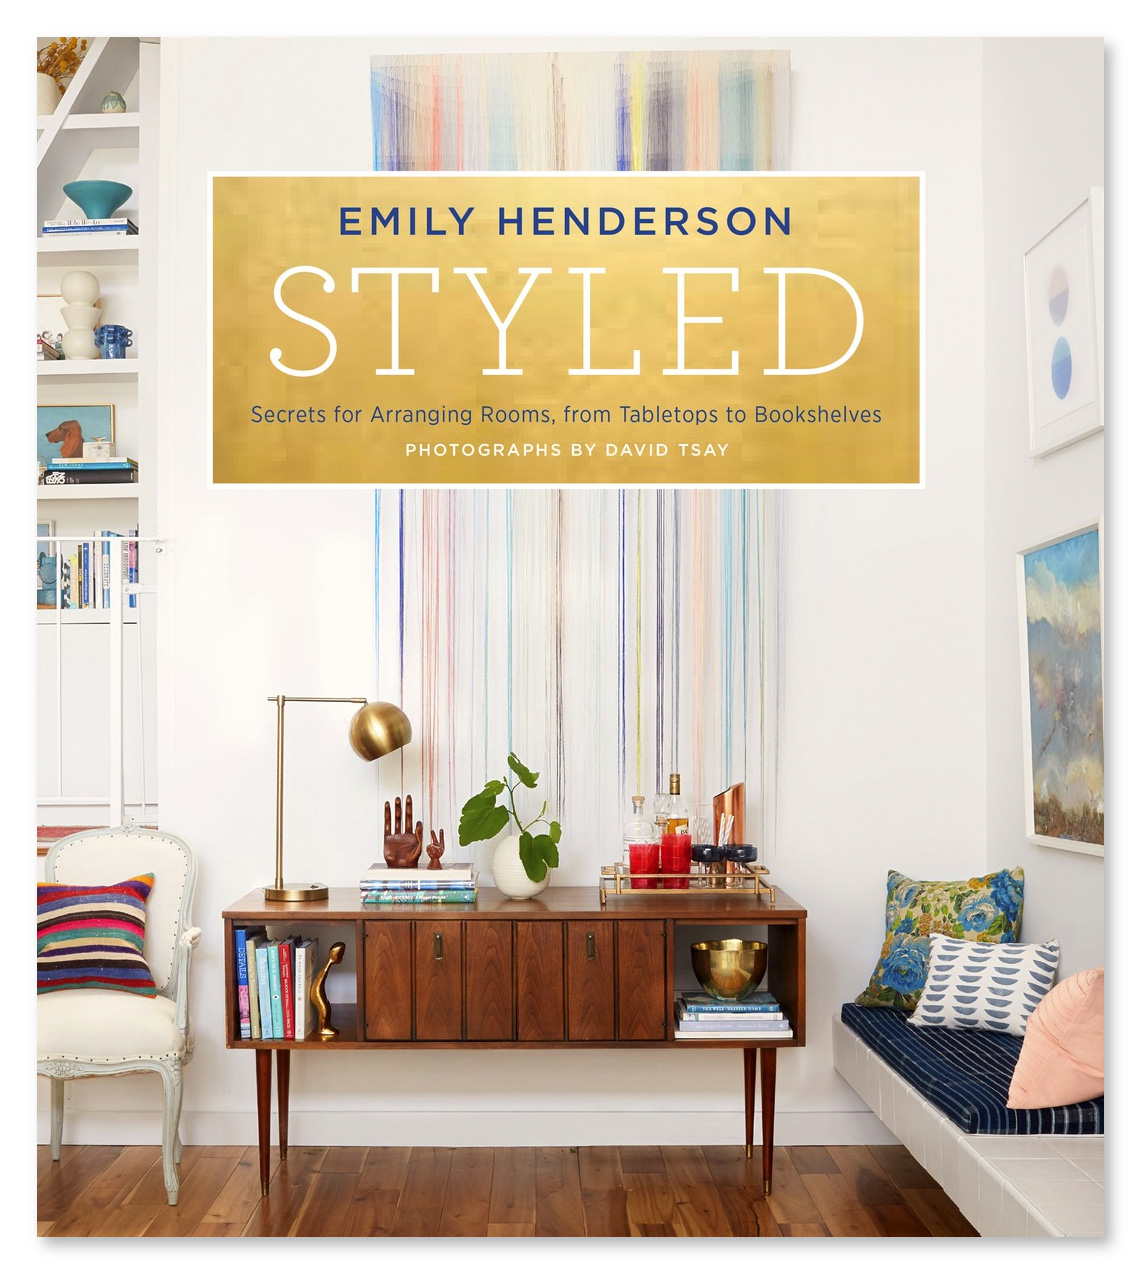 STYLED By Emily Henderson Sweepstakes Rules